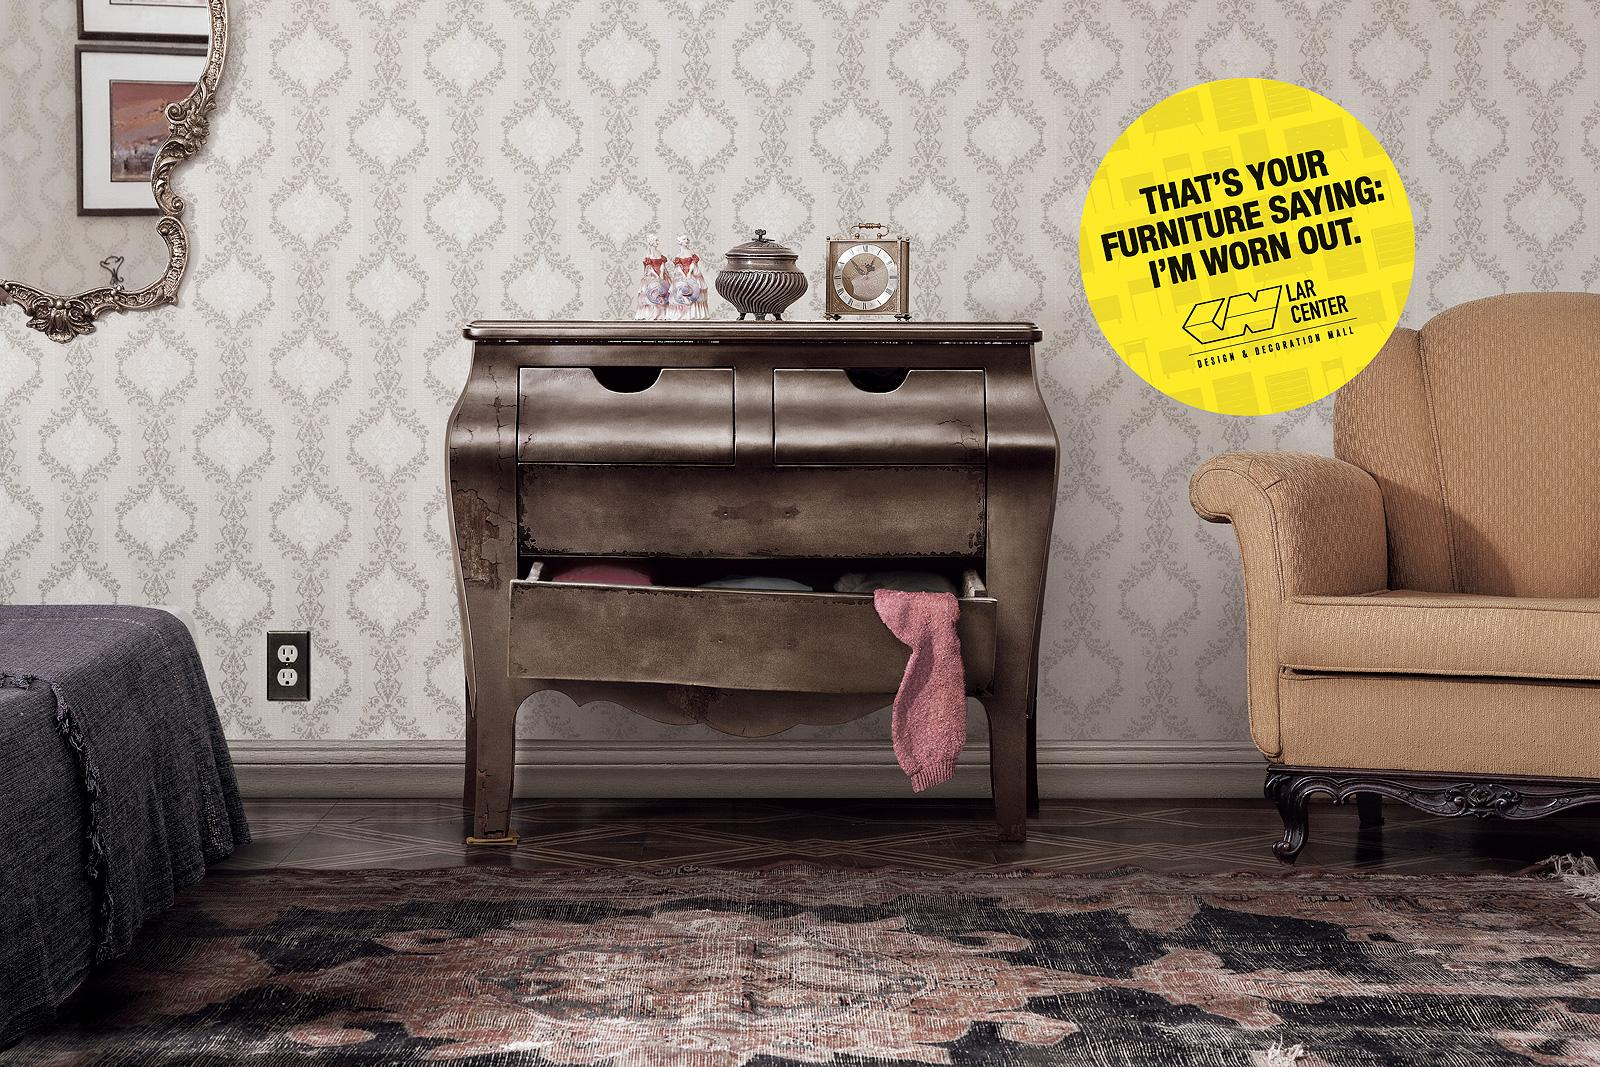 Lar Center Print Ad   Tired Furniture, 2